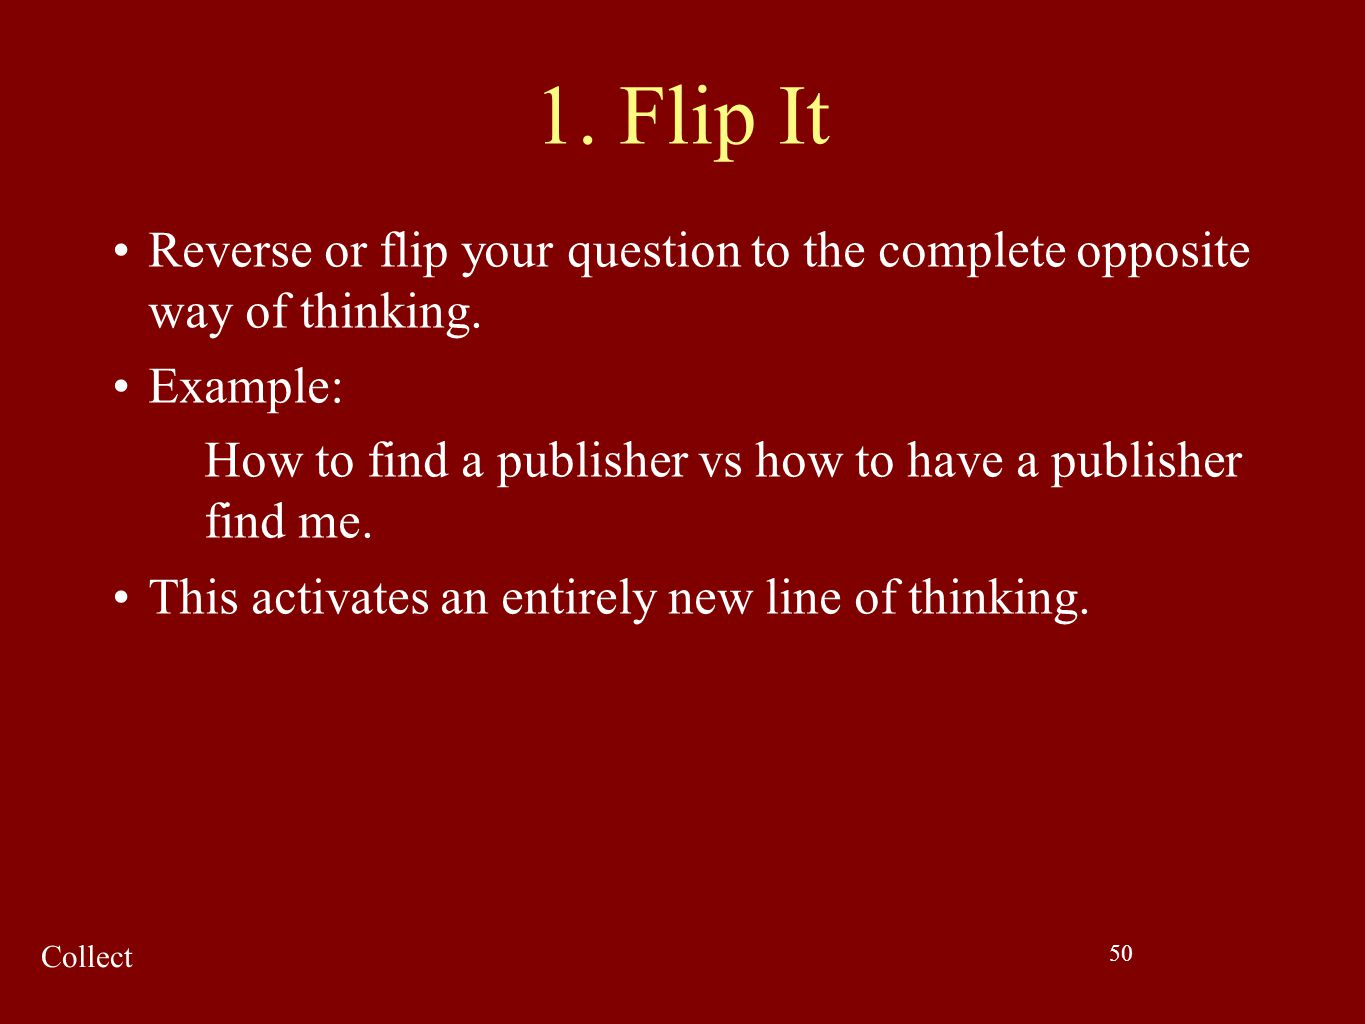 1. Flip It Reverse or flip your question to the complete opposite way of thinking. Example: